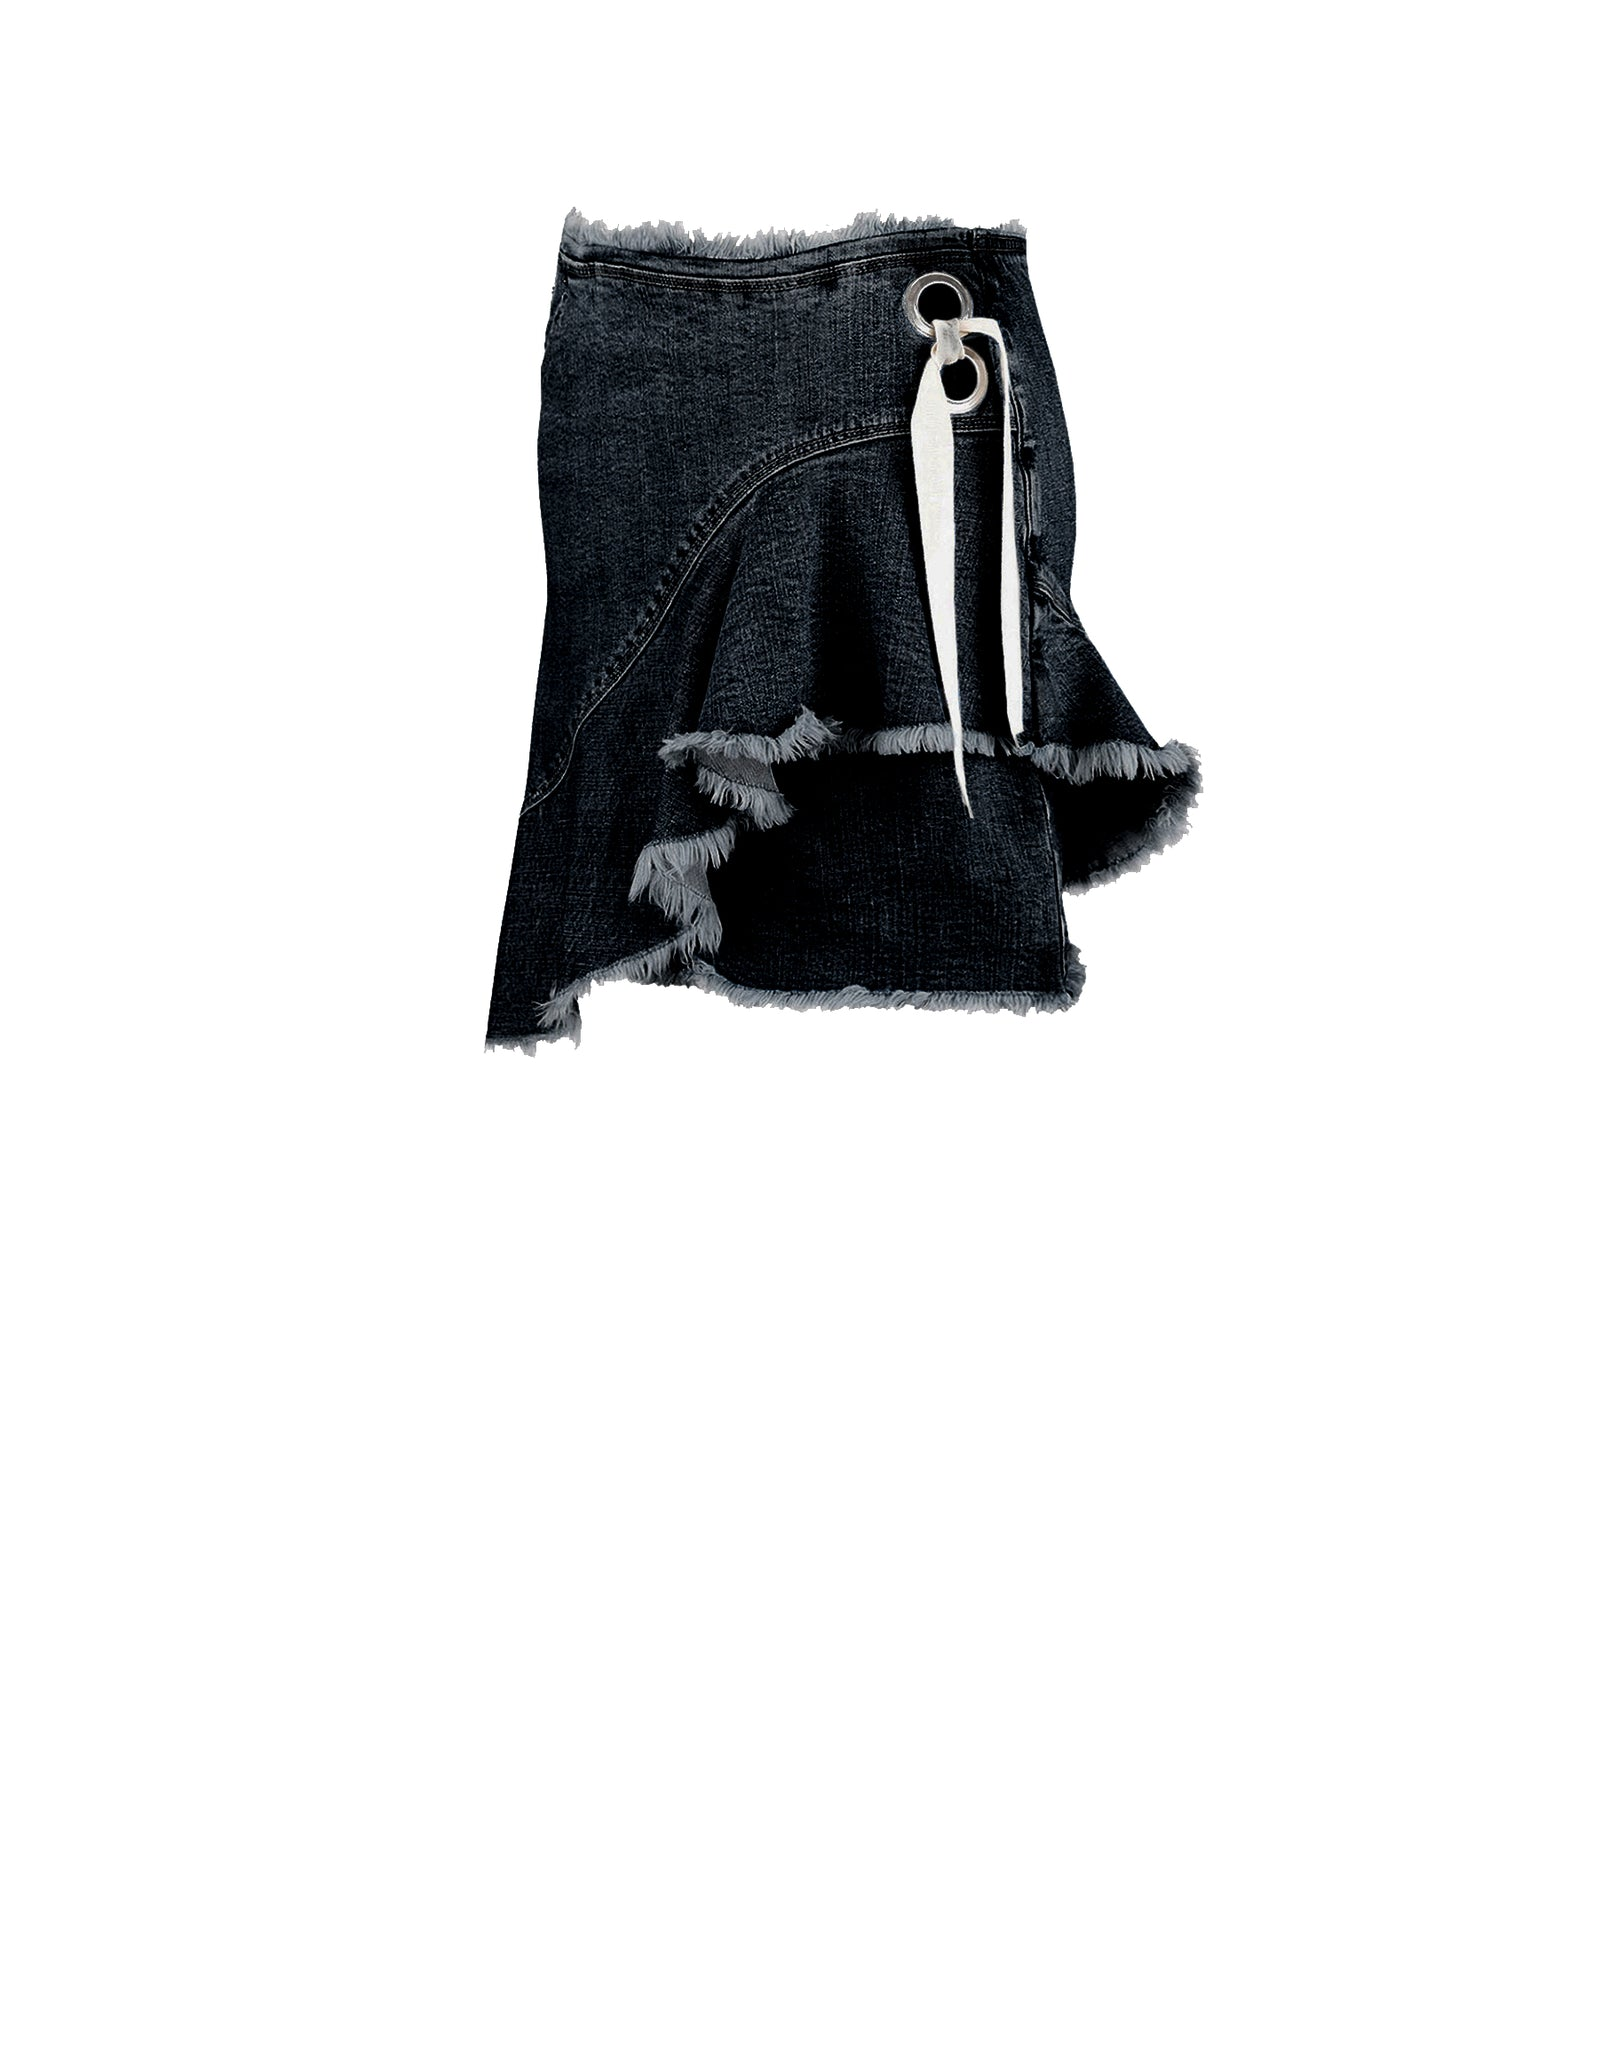 Denim Ruffle Skirt Black - ISLE & ROW